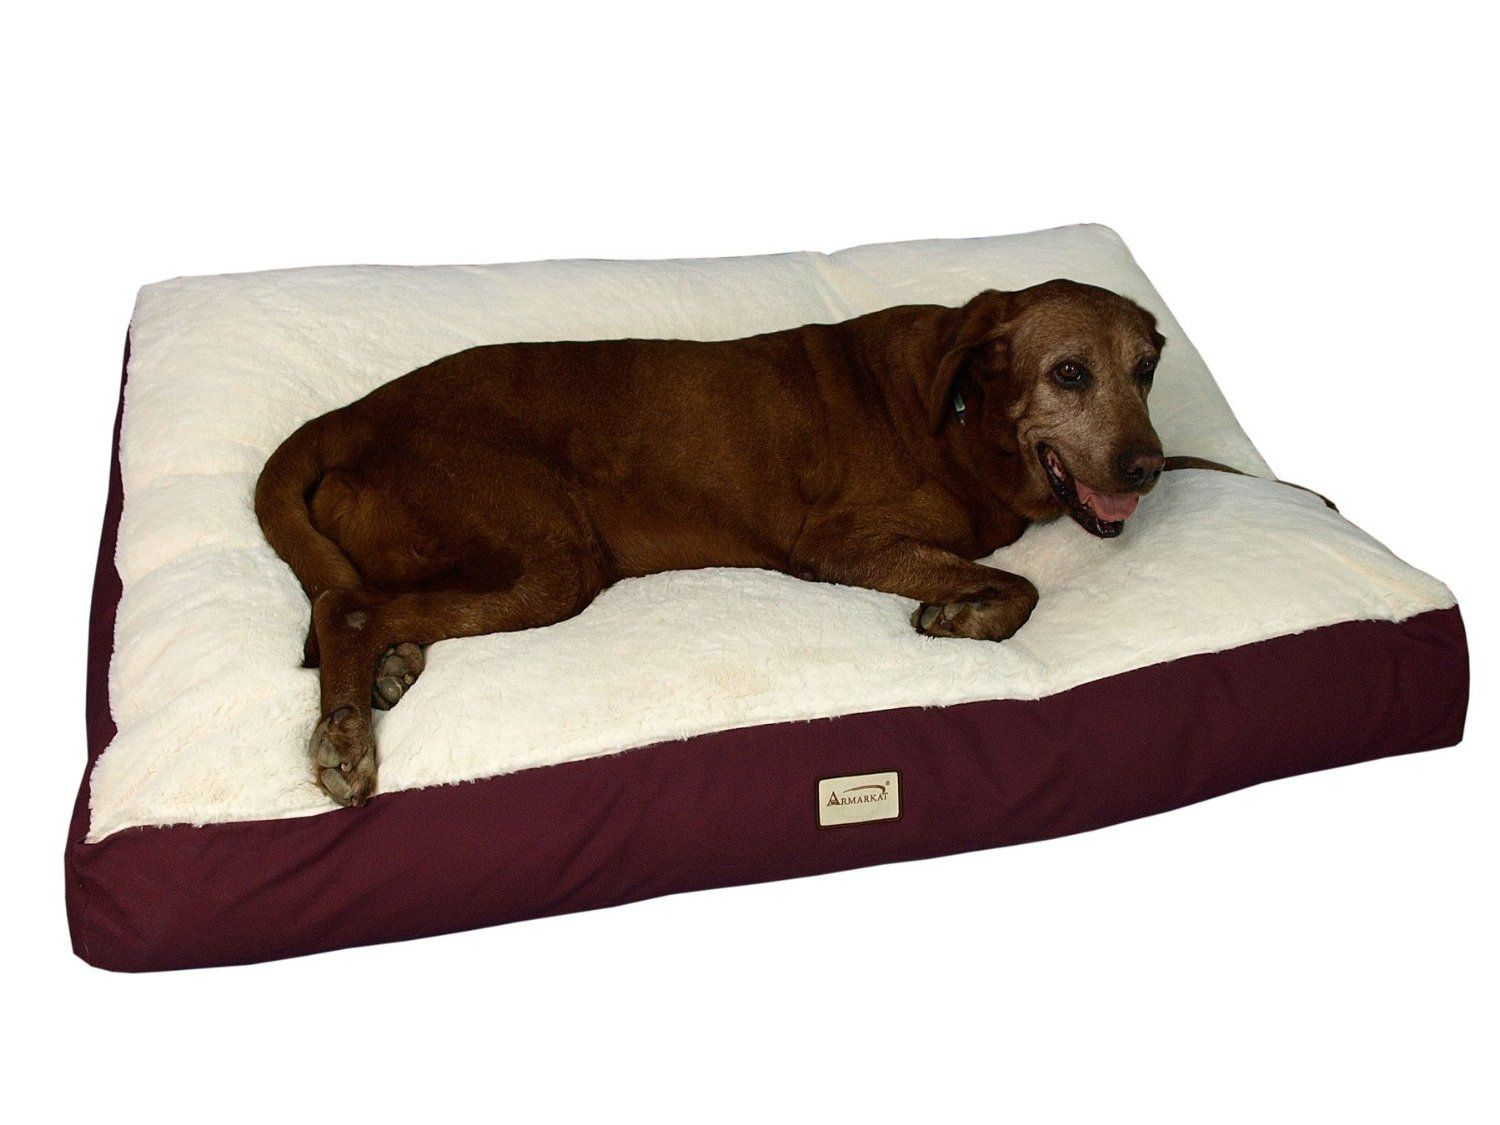 x large dog bed with waterproof lining http://www.webnuggetz